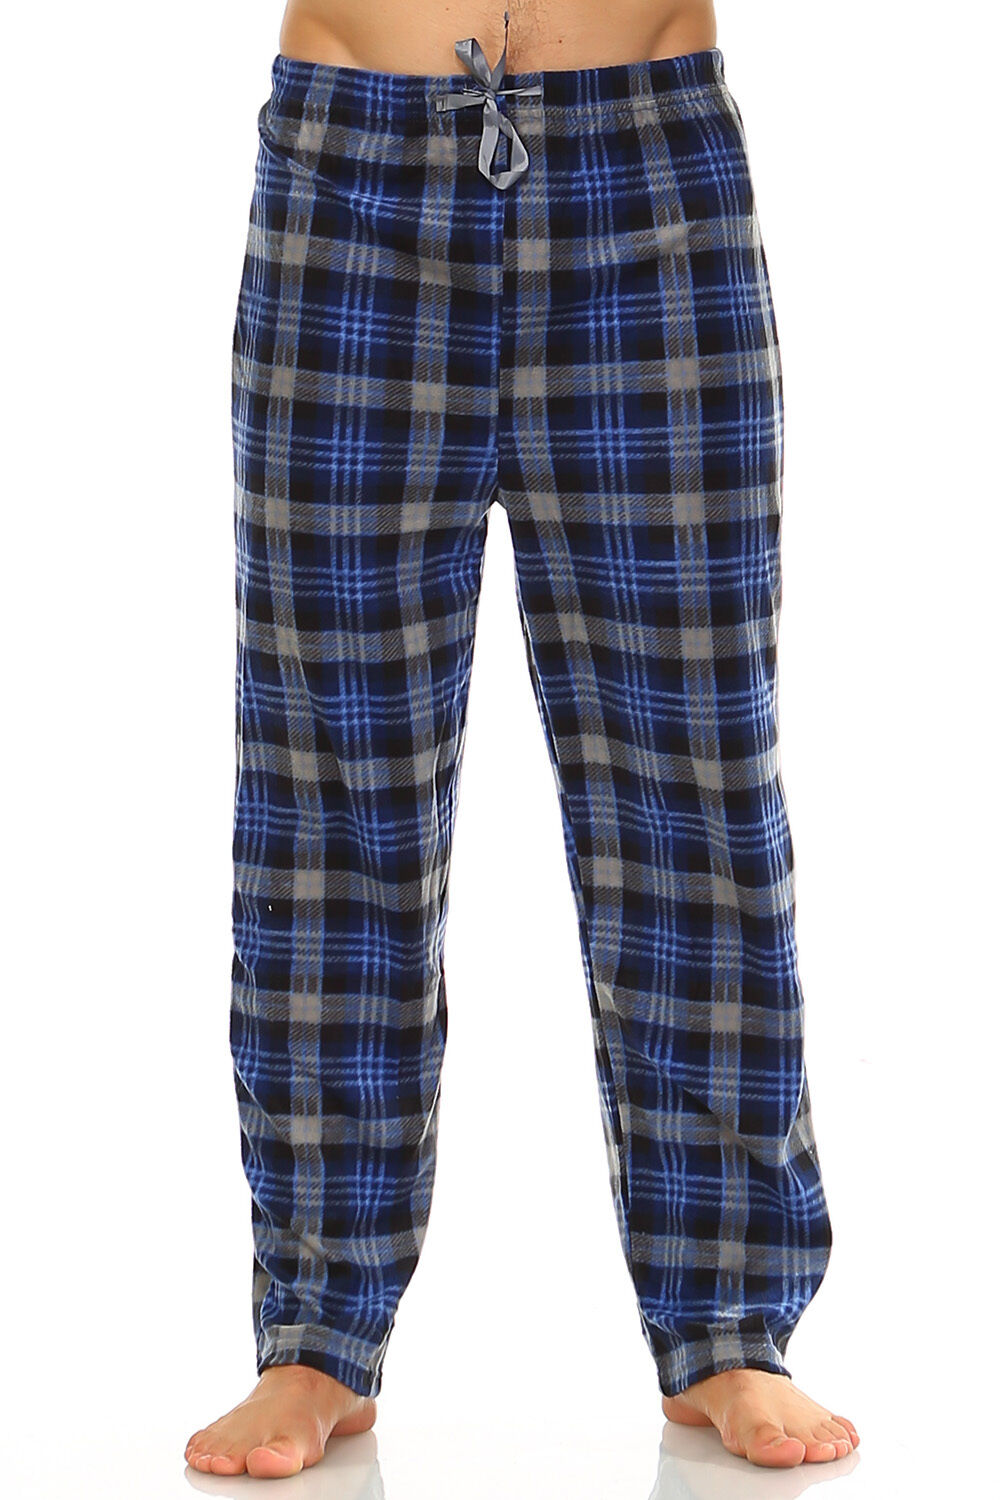 Купить ocean - New Mens Flannel Fleece Pajama Pant Lounge Pants, PJ Pants